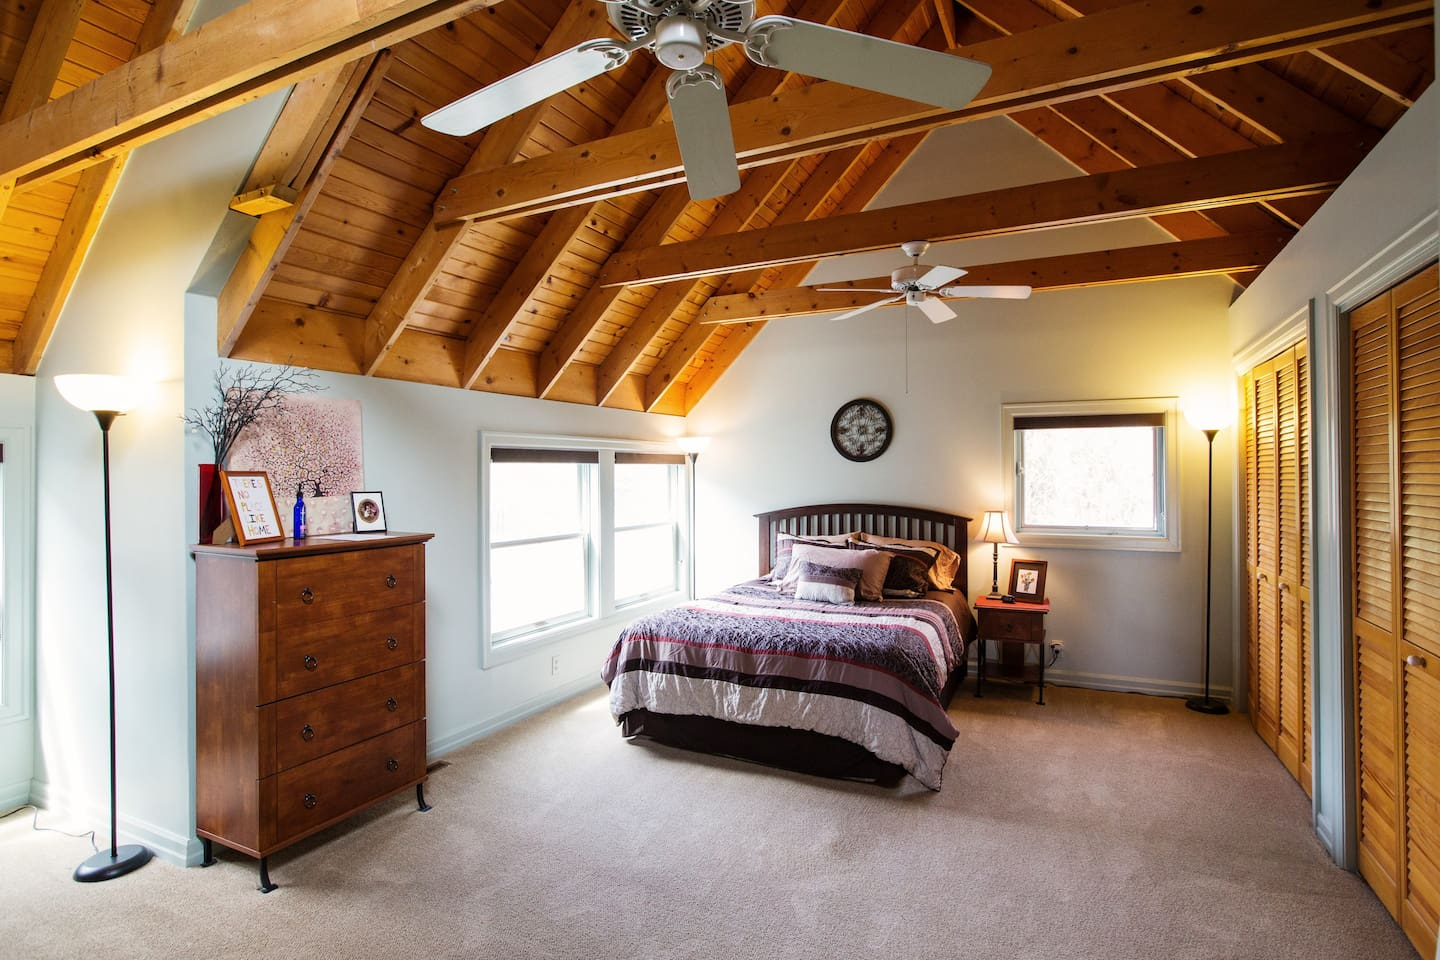 Guestroom 1:  Queen bed, ample closet space, couch, dresser,  vaulted ceiling, lots of light.